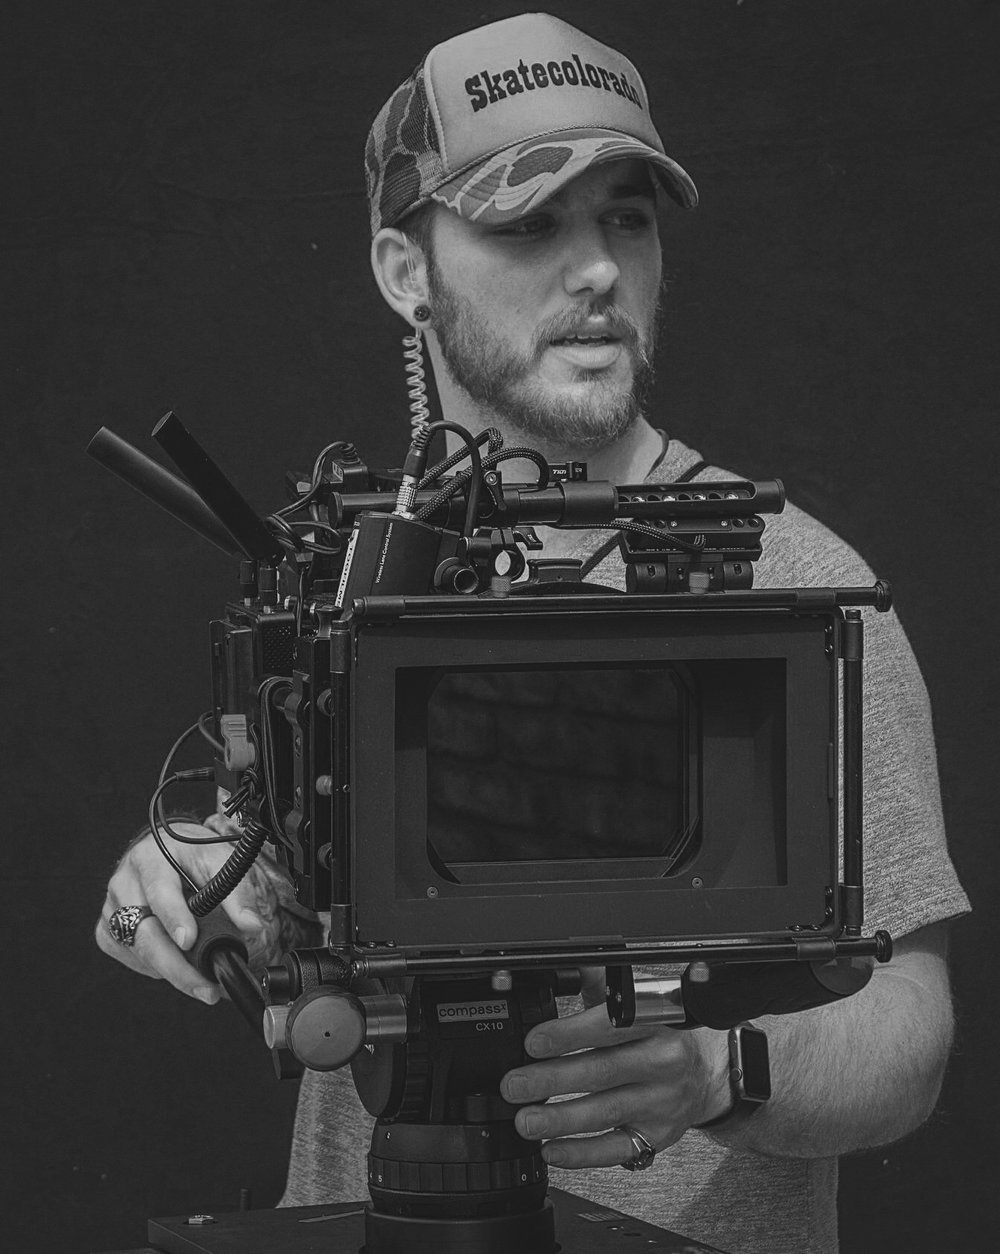 Director of Photography-Nick Bruso - Nick was born and raised in Littleton, Colorado. Nick grew up always having a camera in his hand. He had a passion and love to film his friends and family. This love for documenting turned into his passion for film making. Nick's first full length film took 3 years to make. He wrote, directed, filmed, and edited the film called